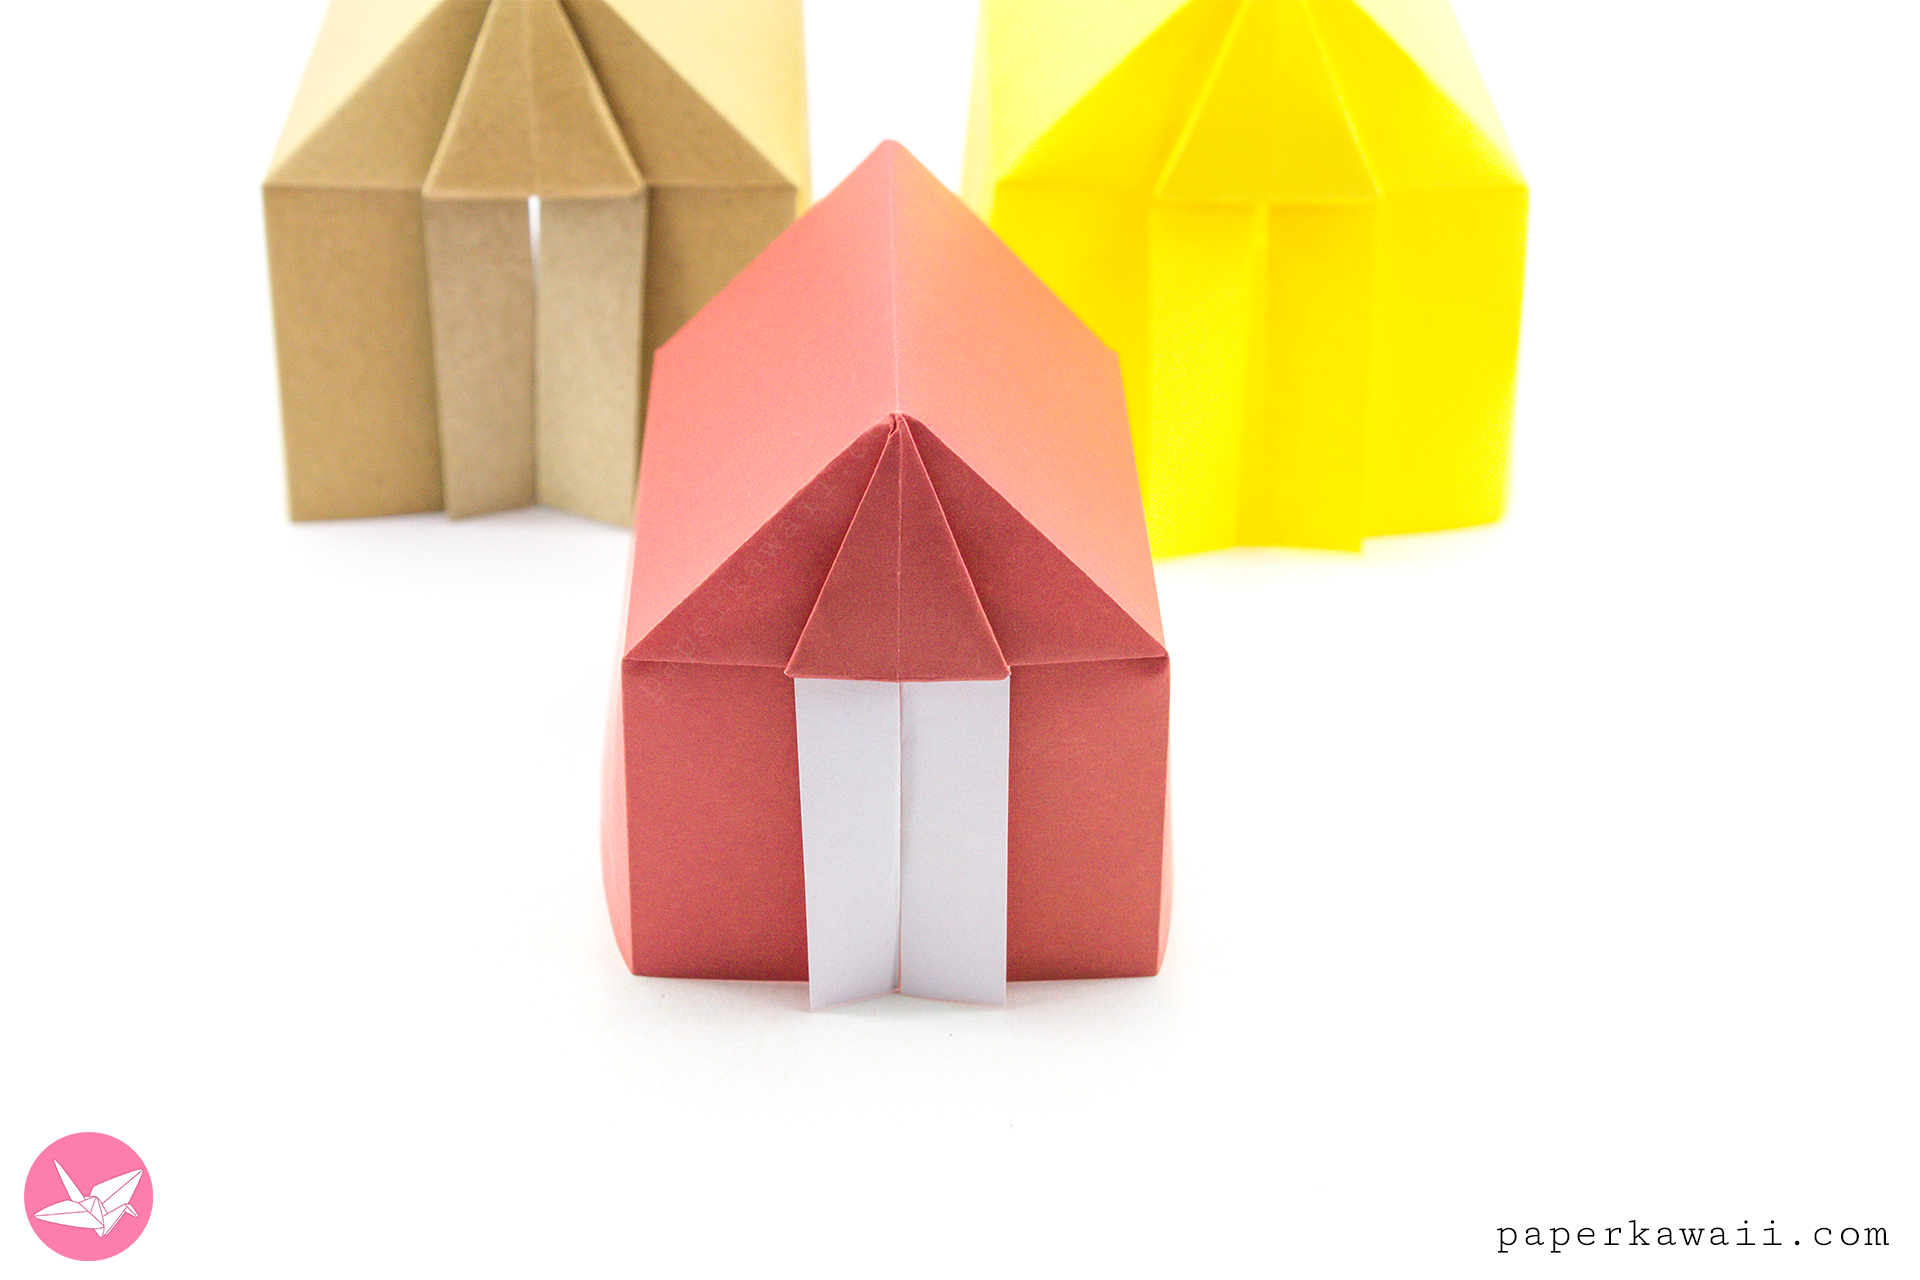 How To Make 3d Cardboard And Paper House (Simple DIY) - Album on Imgur | 1280x1920